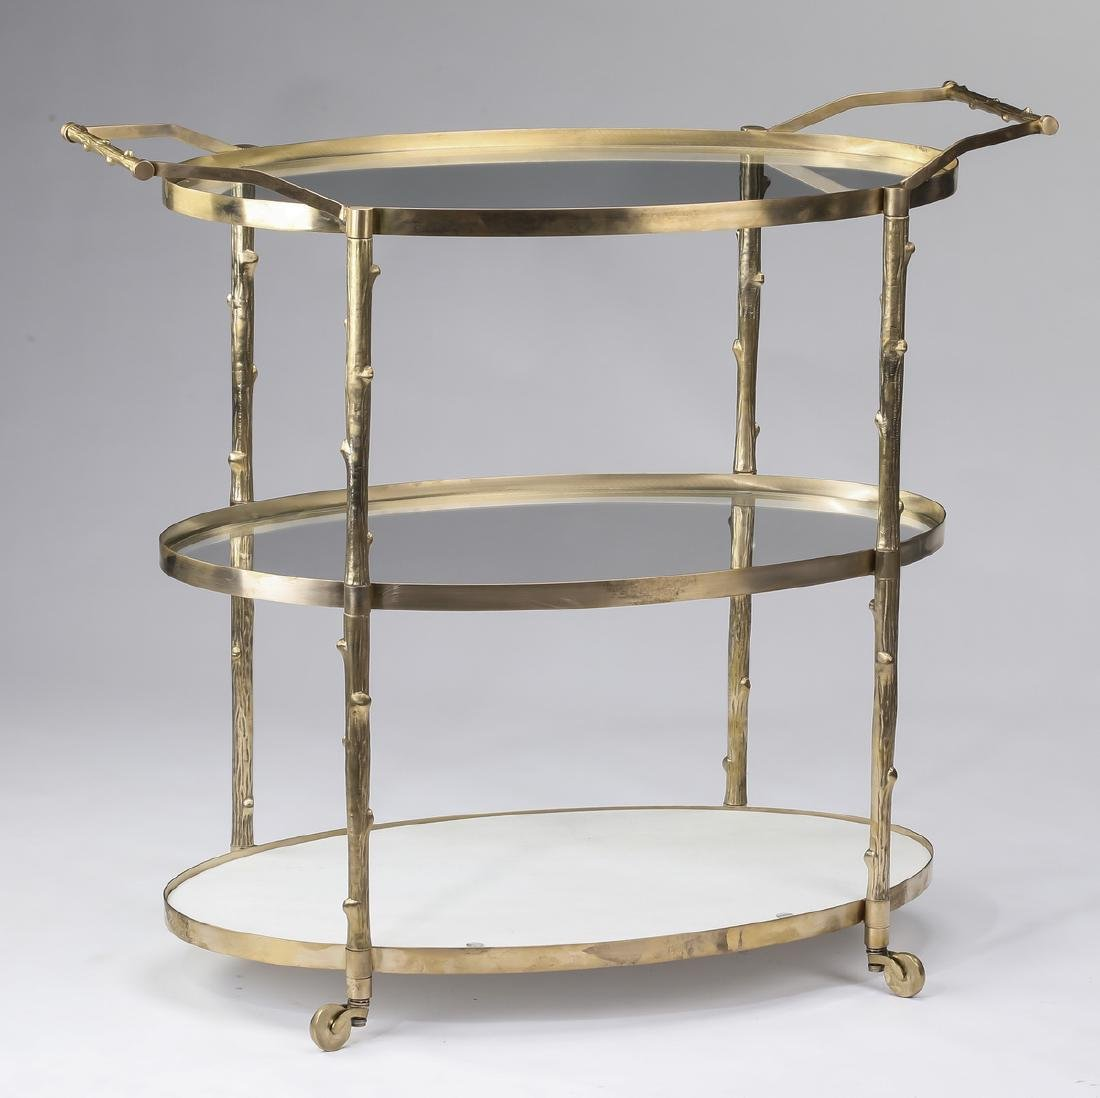 "Three tier brass, glass, and marble bar cart, 42""w"